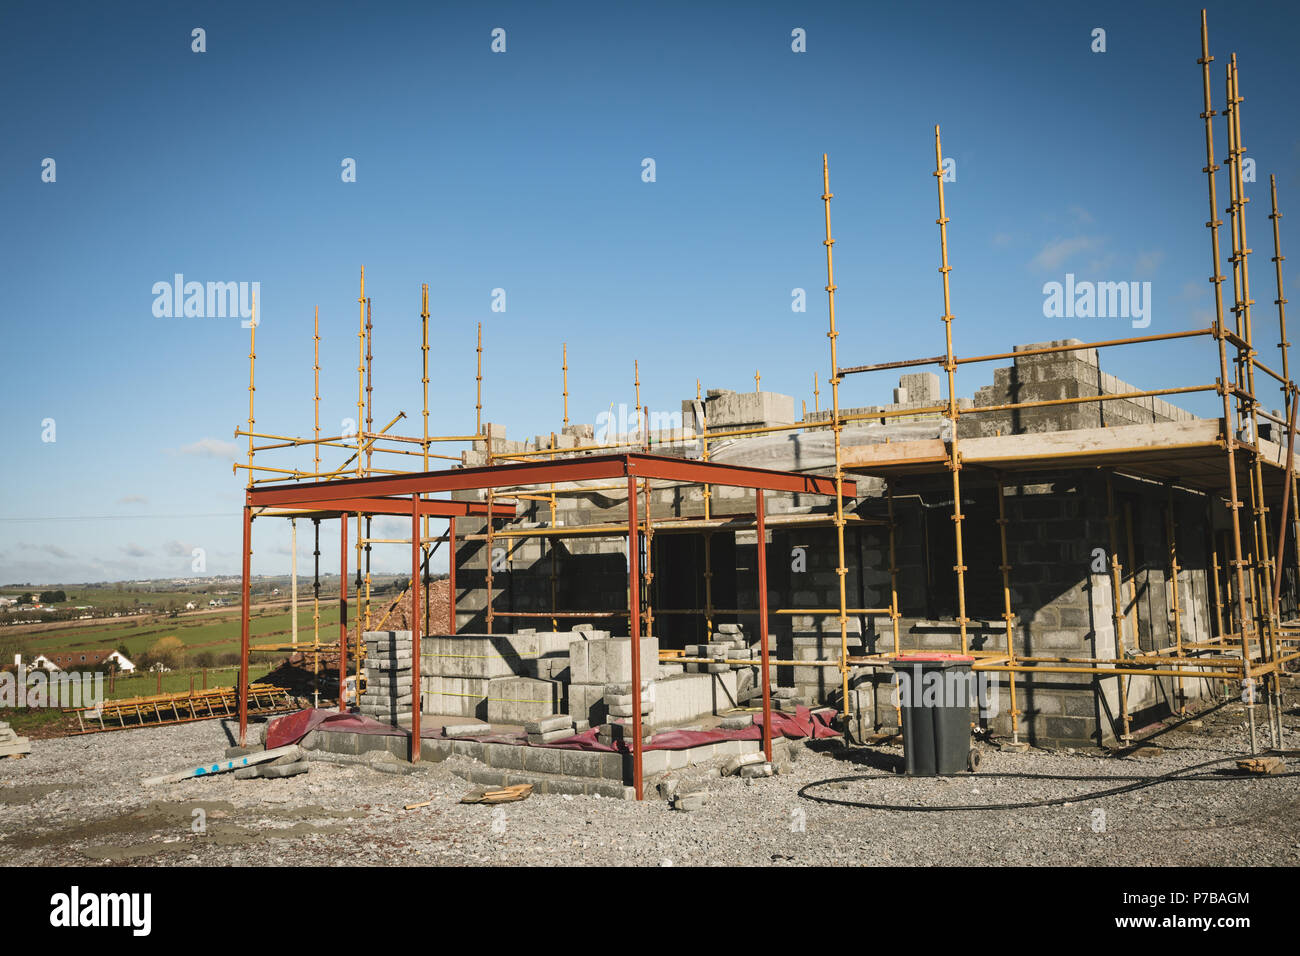 Scaffolding around the building at construction site - Stock Image